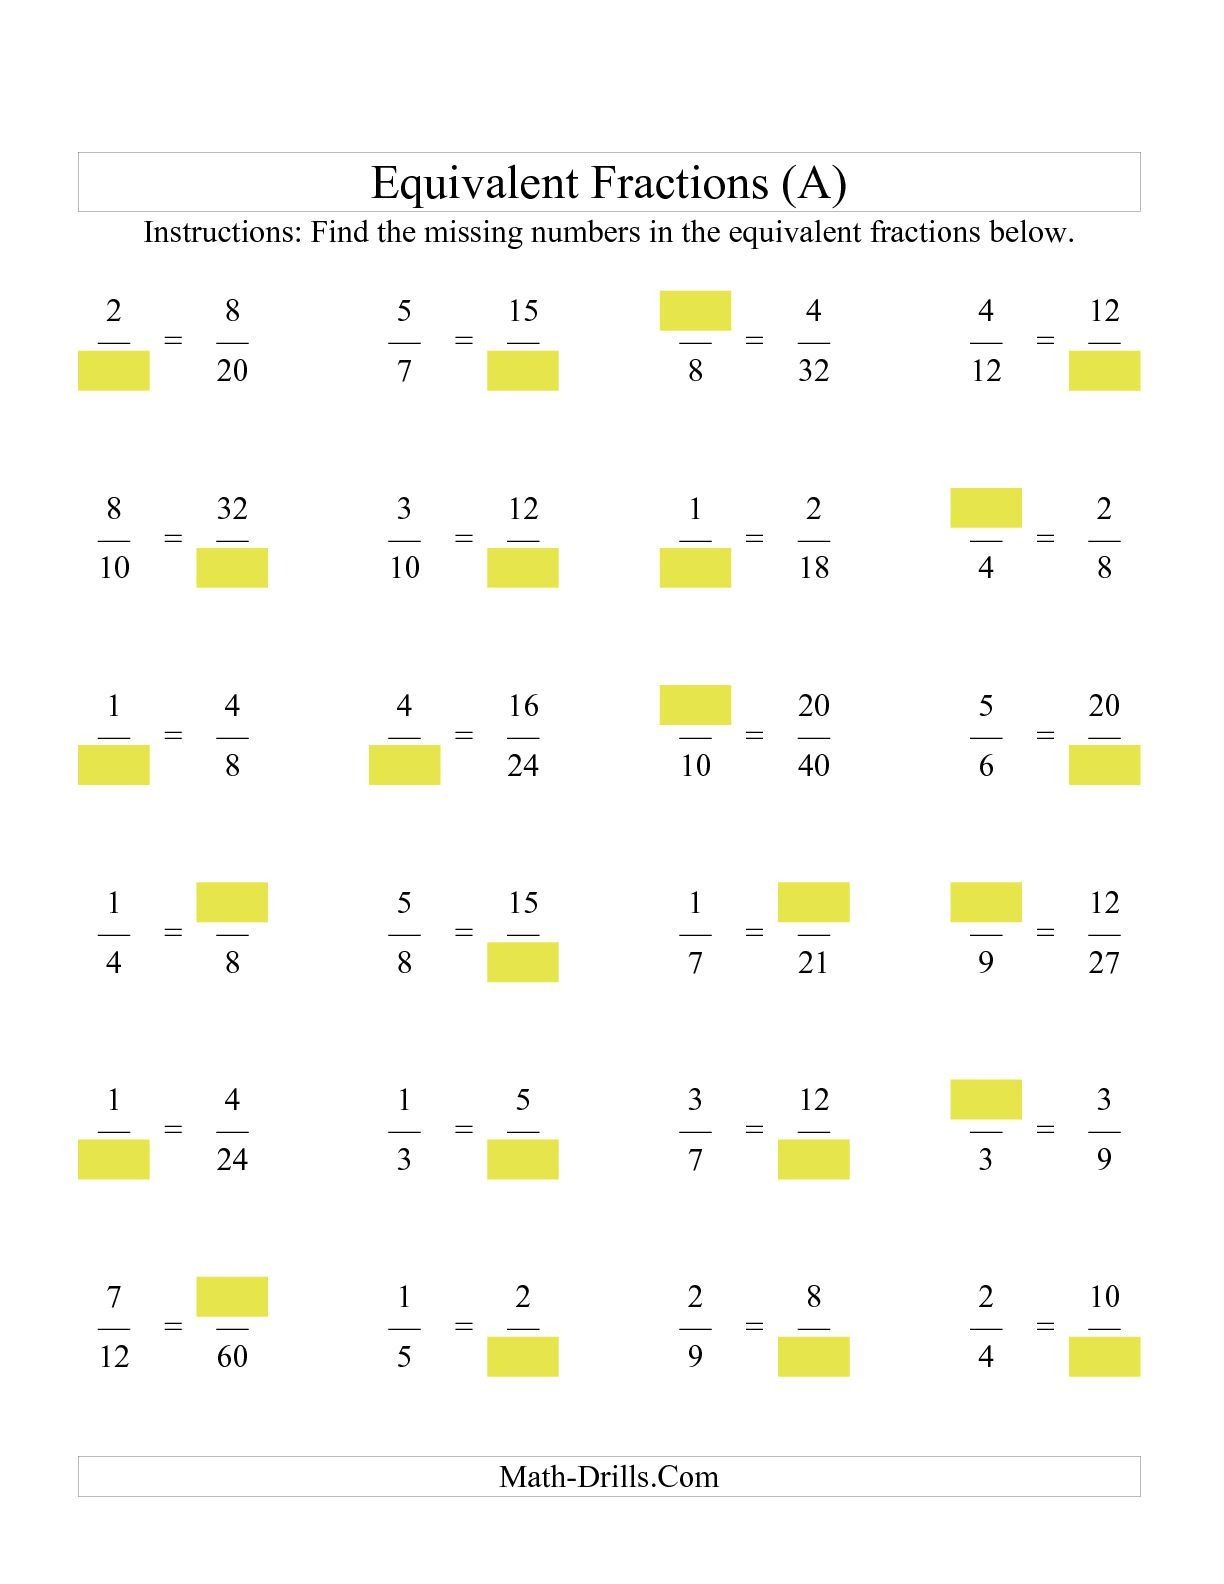 The Missing Numbers In Equivalent Fractions A Math